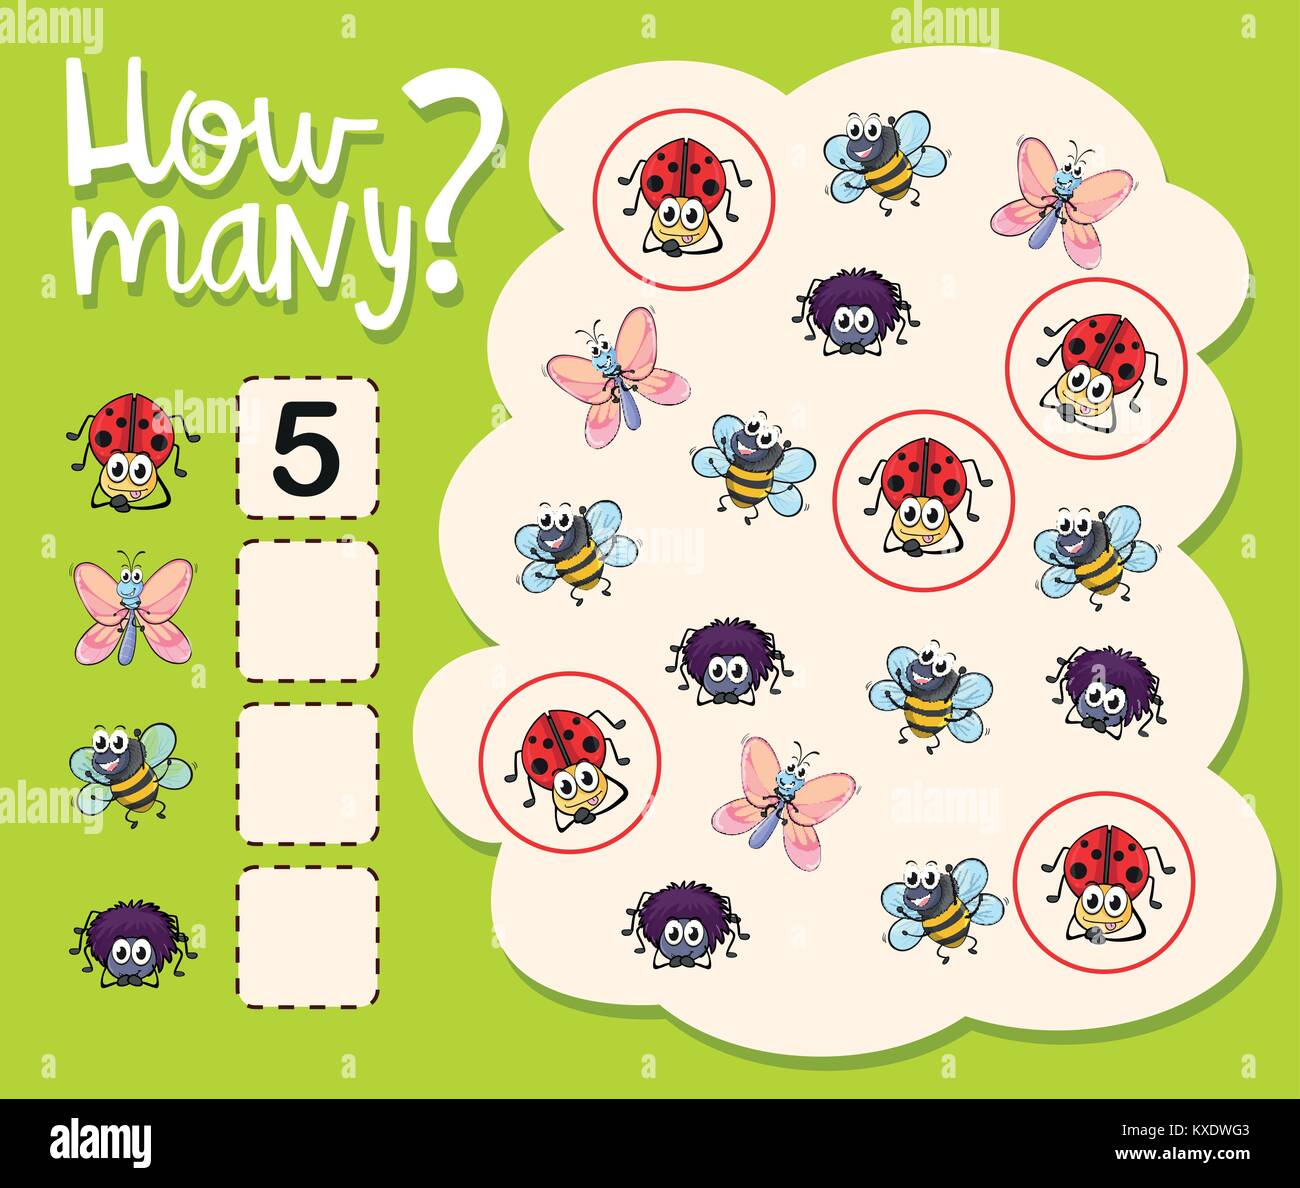 How Many Worksheet With Many Insects Illustration Stock Vector Art Amp Illustration Vector Image